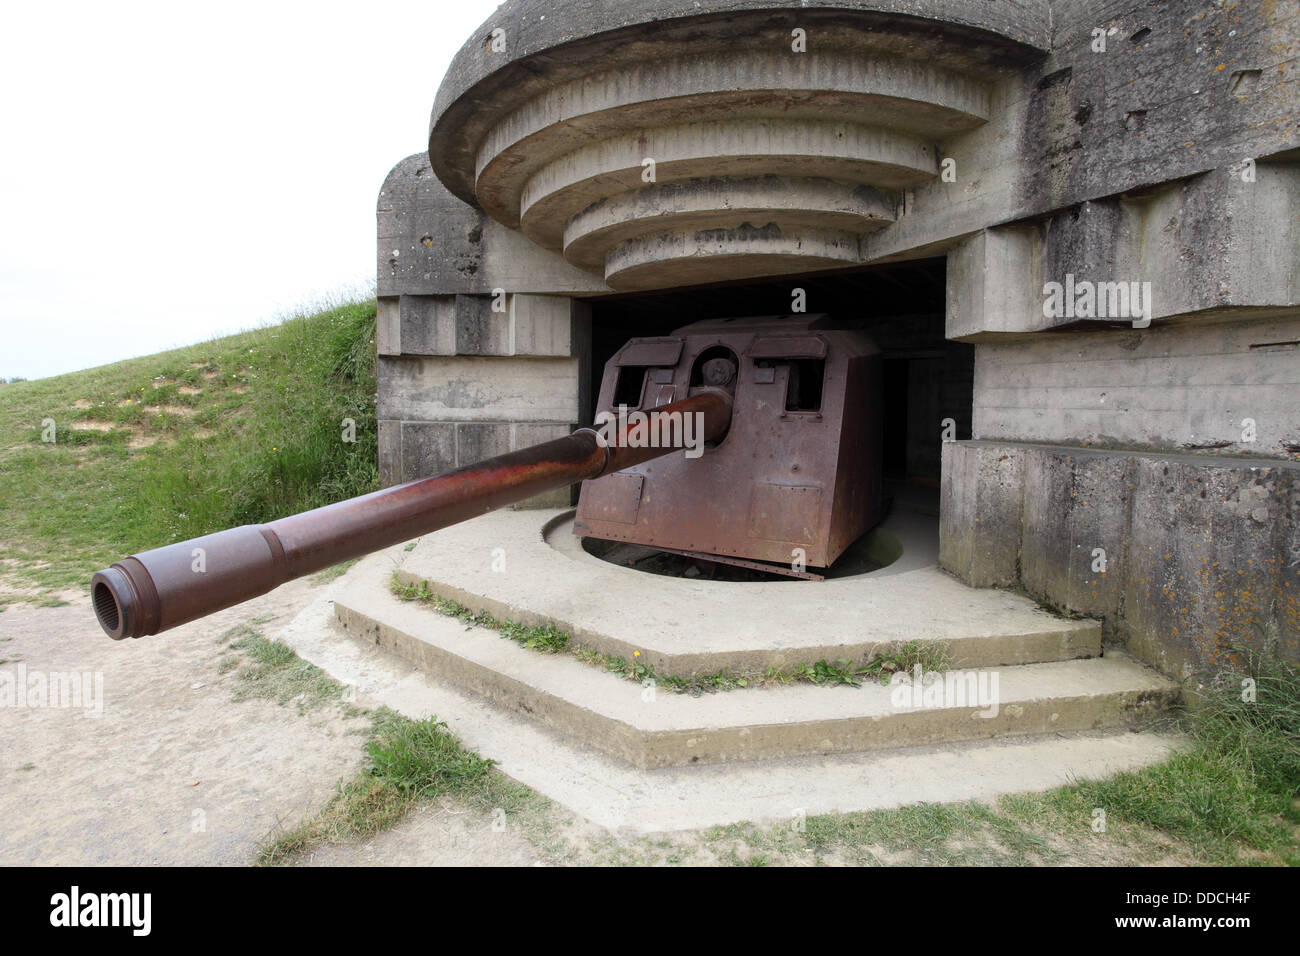 France, Normandy, D-Day Beaches, Longues Sur Mer, WWII German 150mm artillery battery. - Stock Image